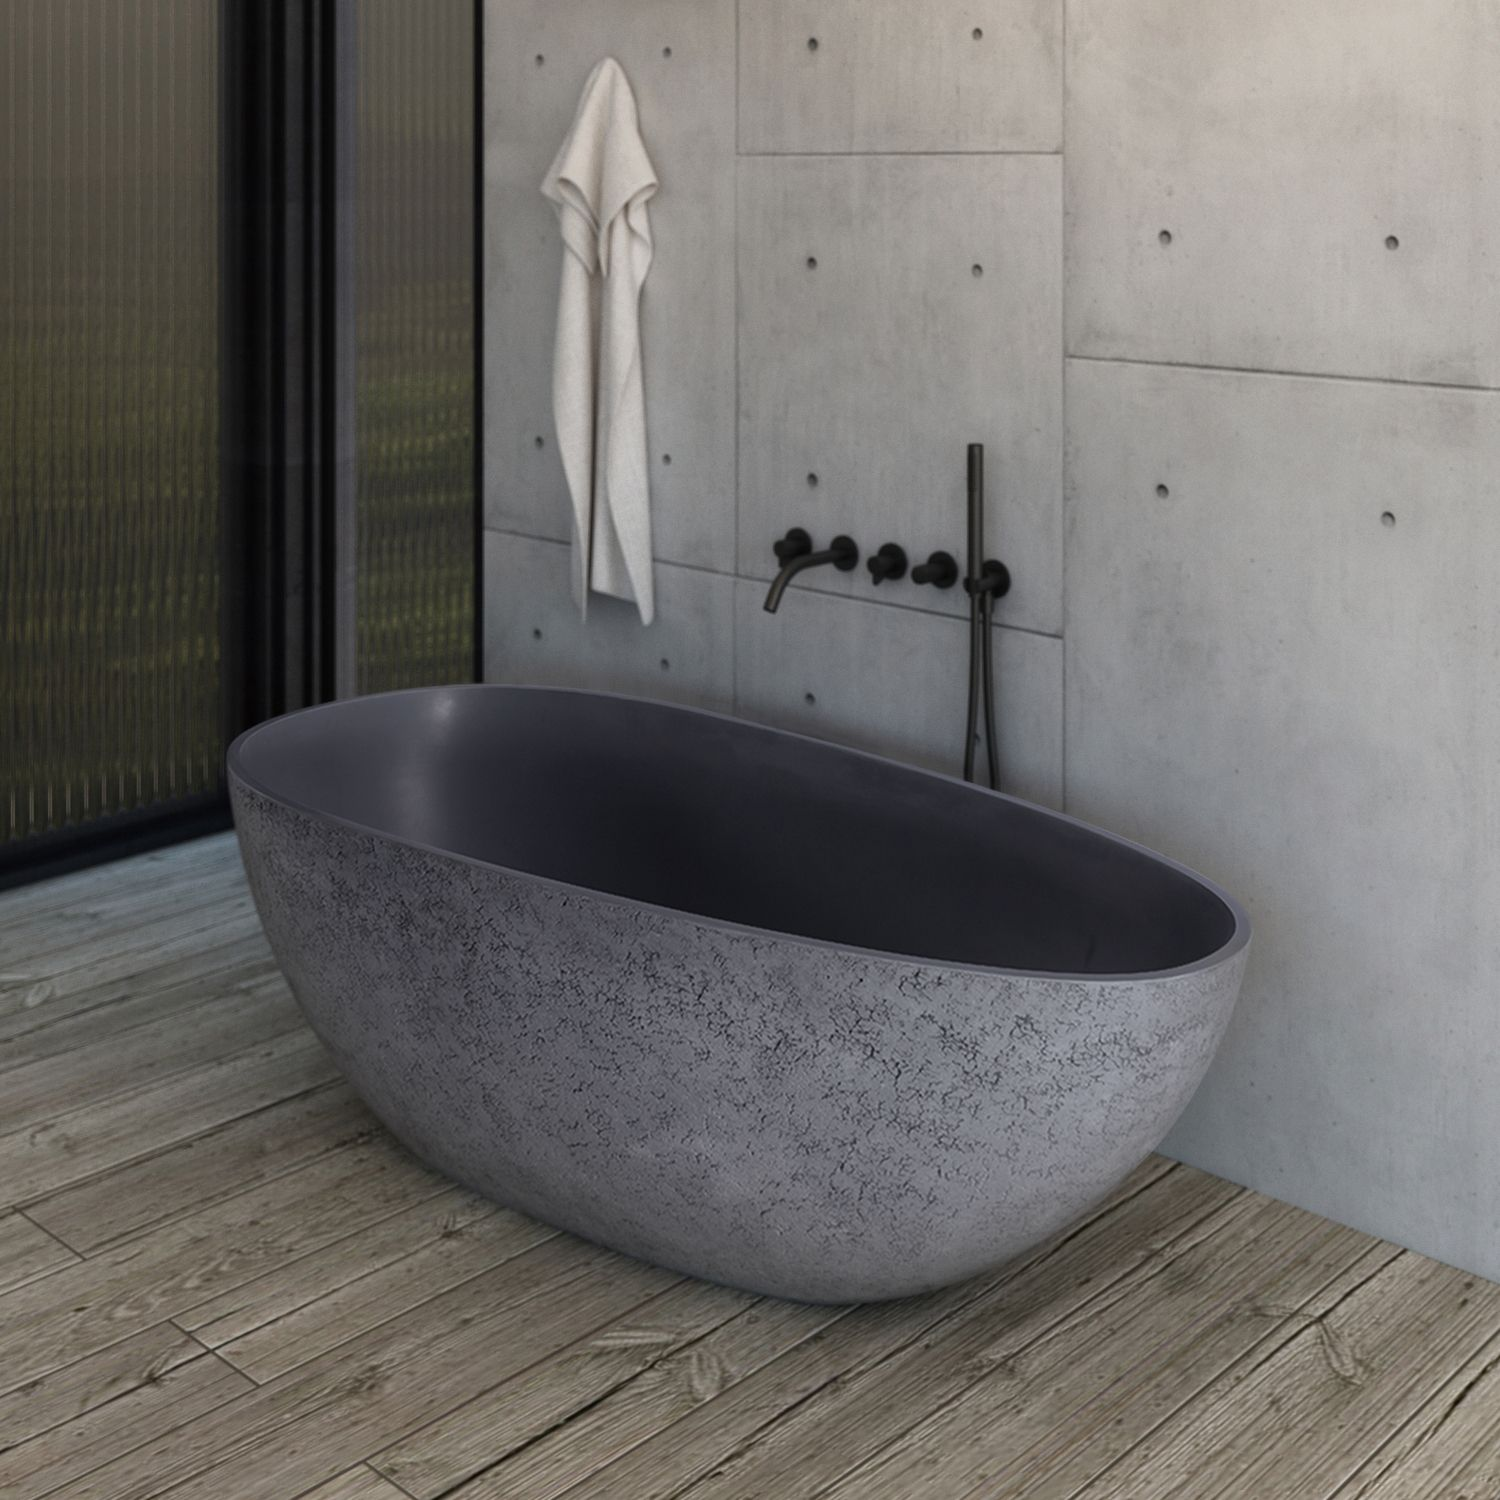 Pin By The Bubblegum Blonde On Tubs With Images Concrete Bathroom Design Concrete Bathroom